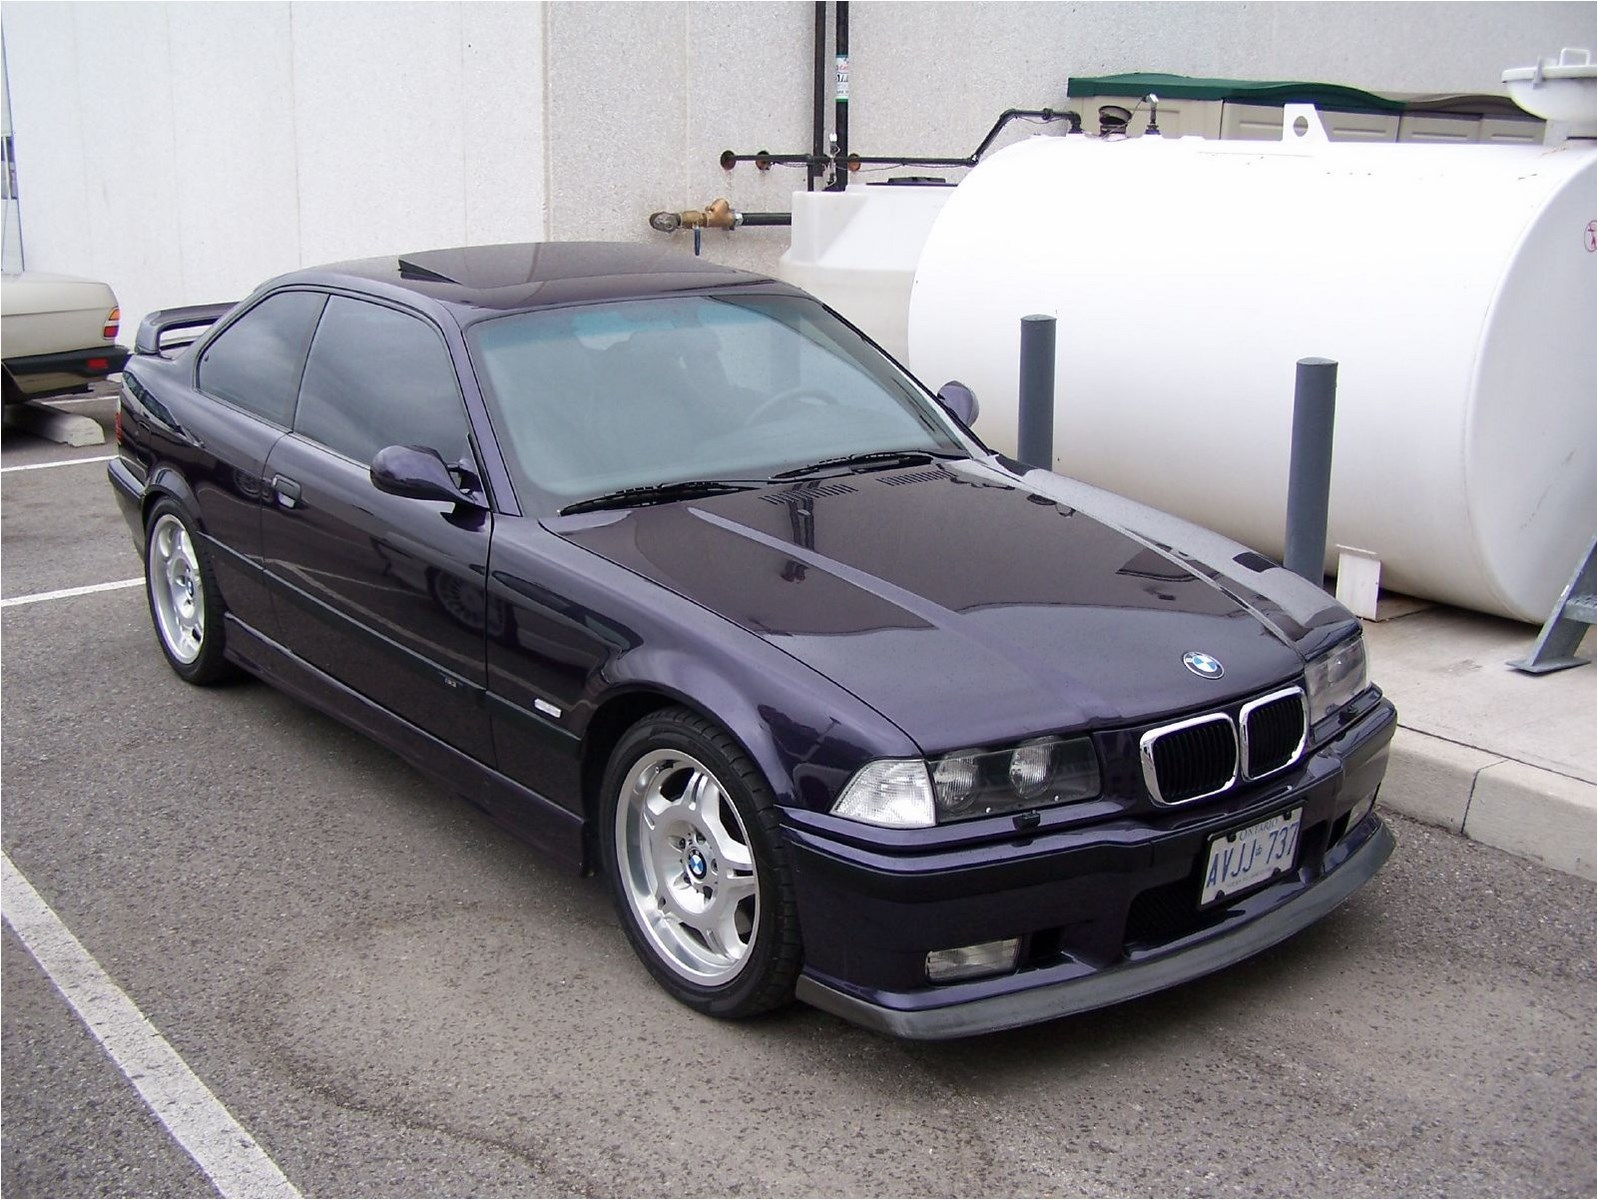 BMW 3 series 316 1990 photo - 9